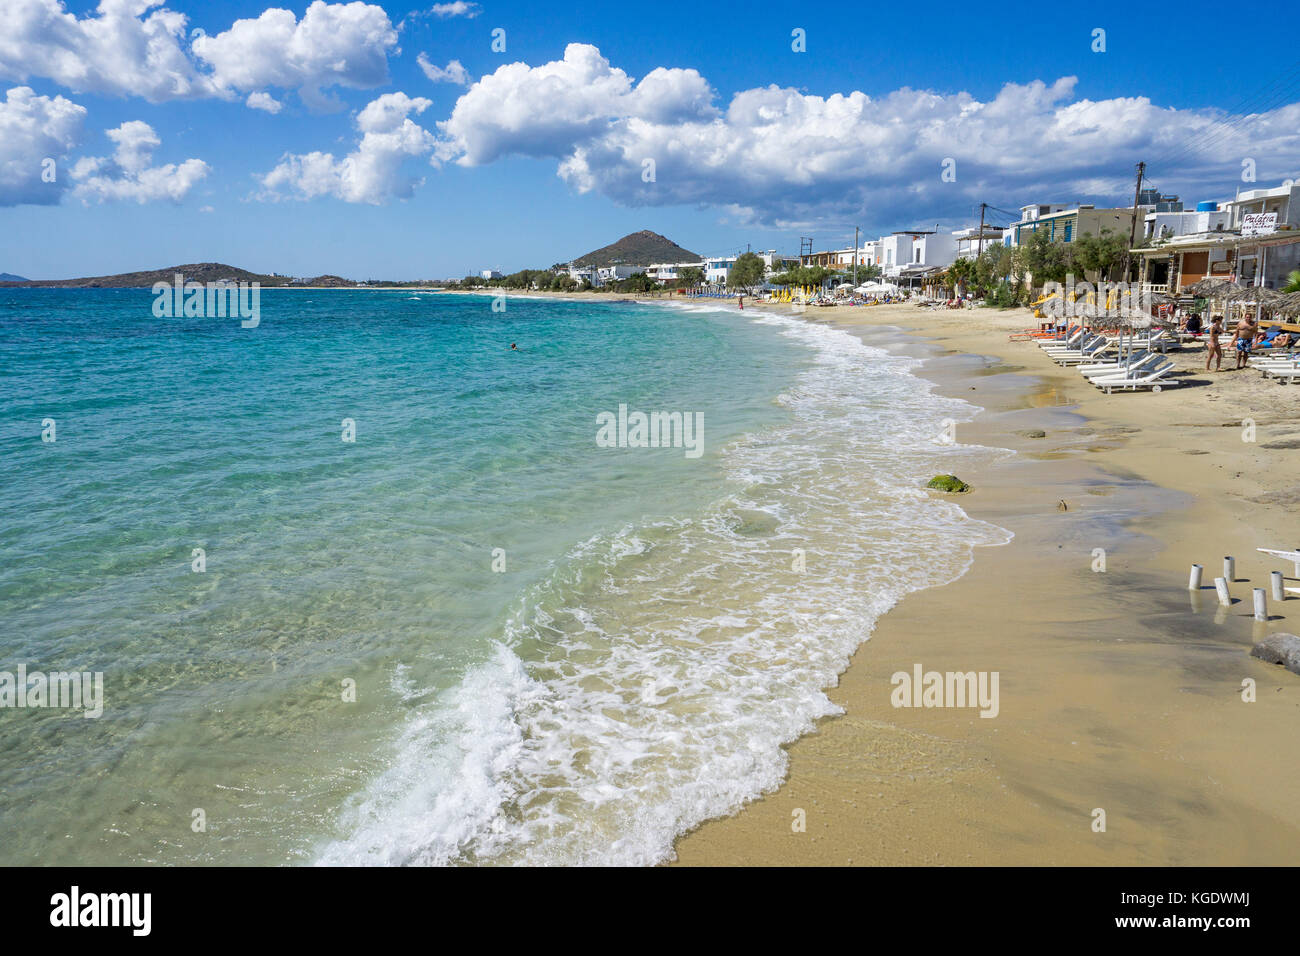 Beach of Agios Prokopios, west side of Naxos island, Cyclades, Aegean, Greece Stock Photo